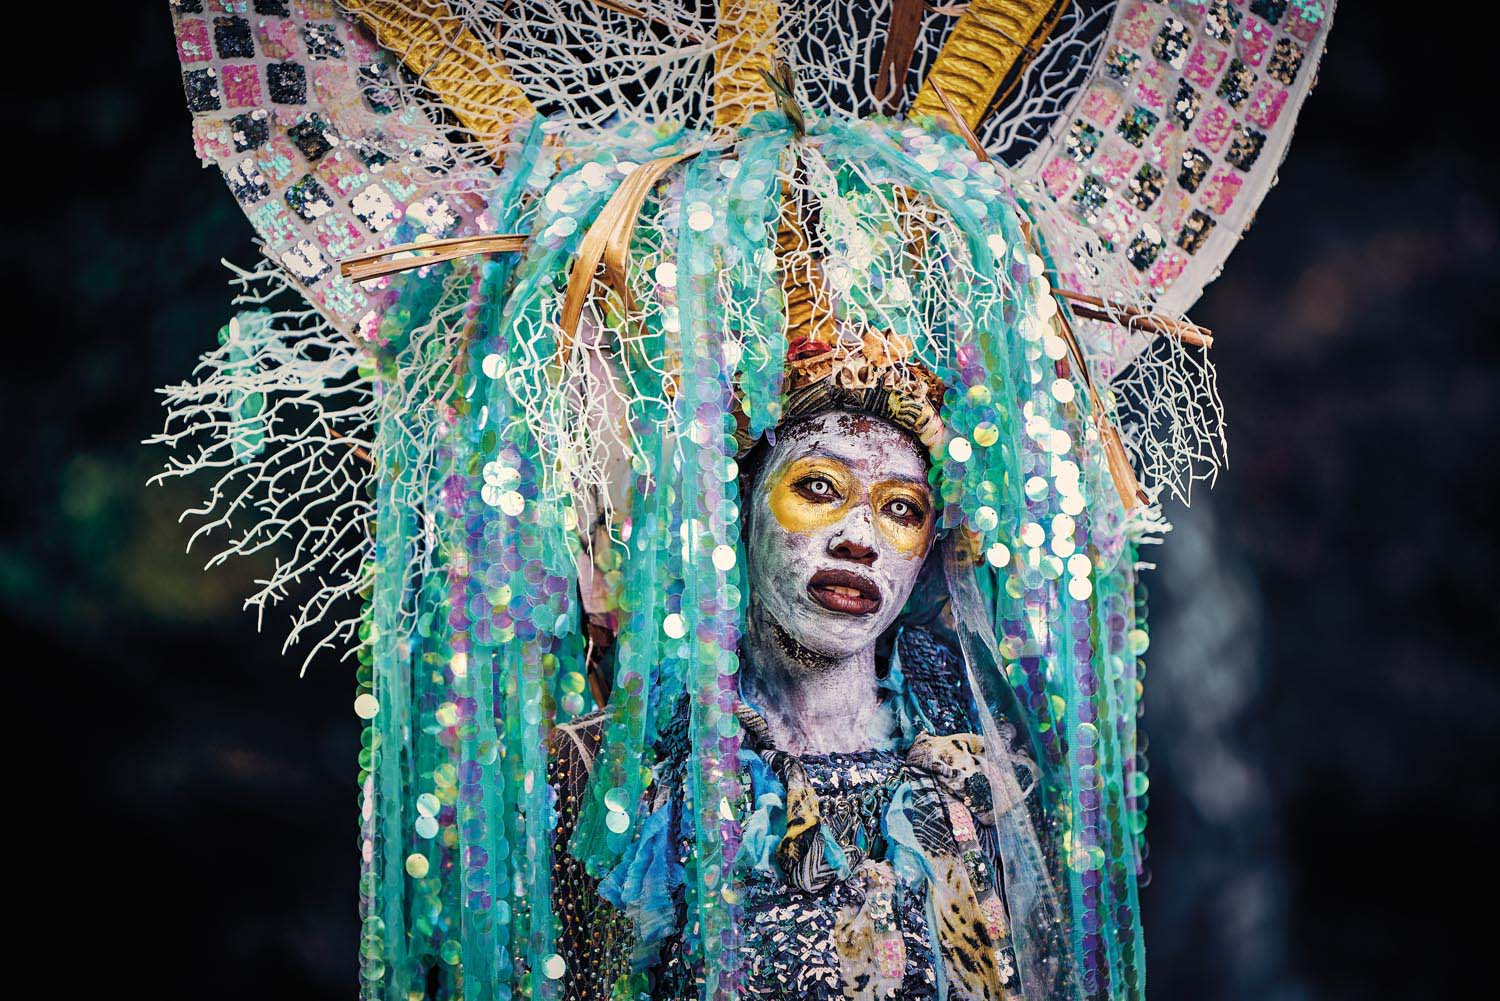 Shynel Brizan, T&T's Queen of Carnival 2019, portraying Mariel-la, Shad-ow of Con-scious-ness from the band Palace of the Peacock, presented by Moko Somõkõw. Photo by Jason C. Audain